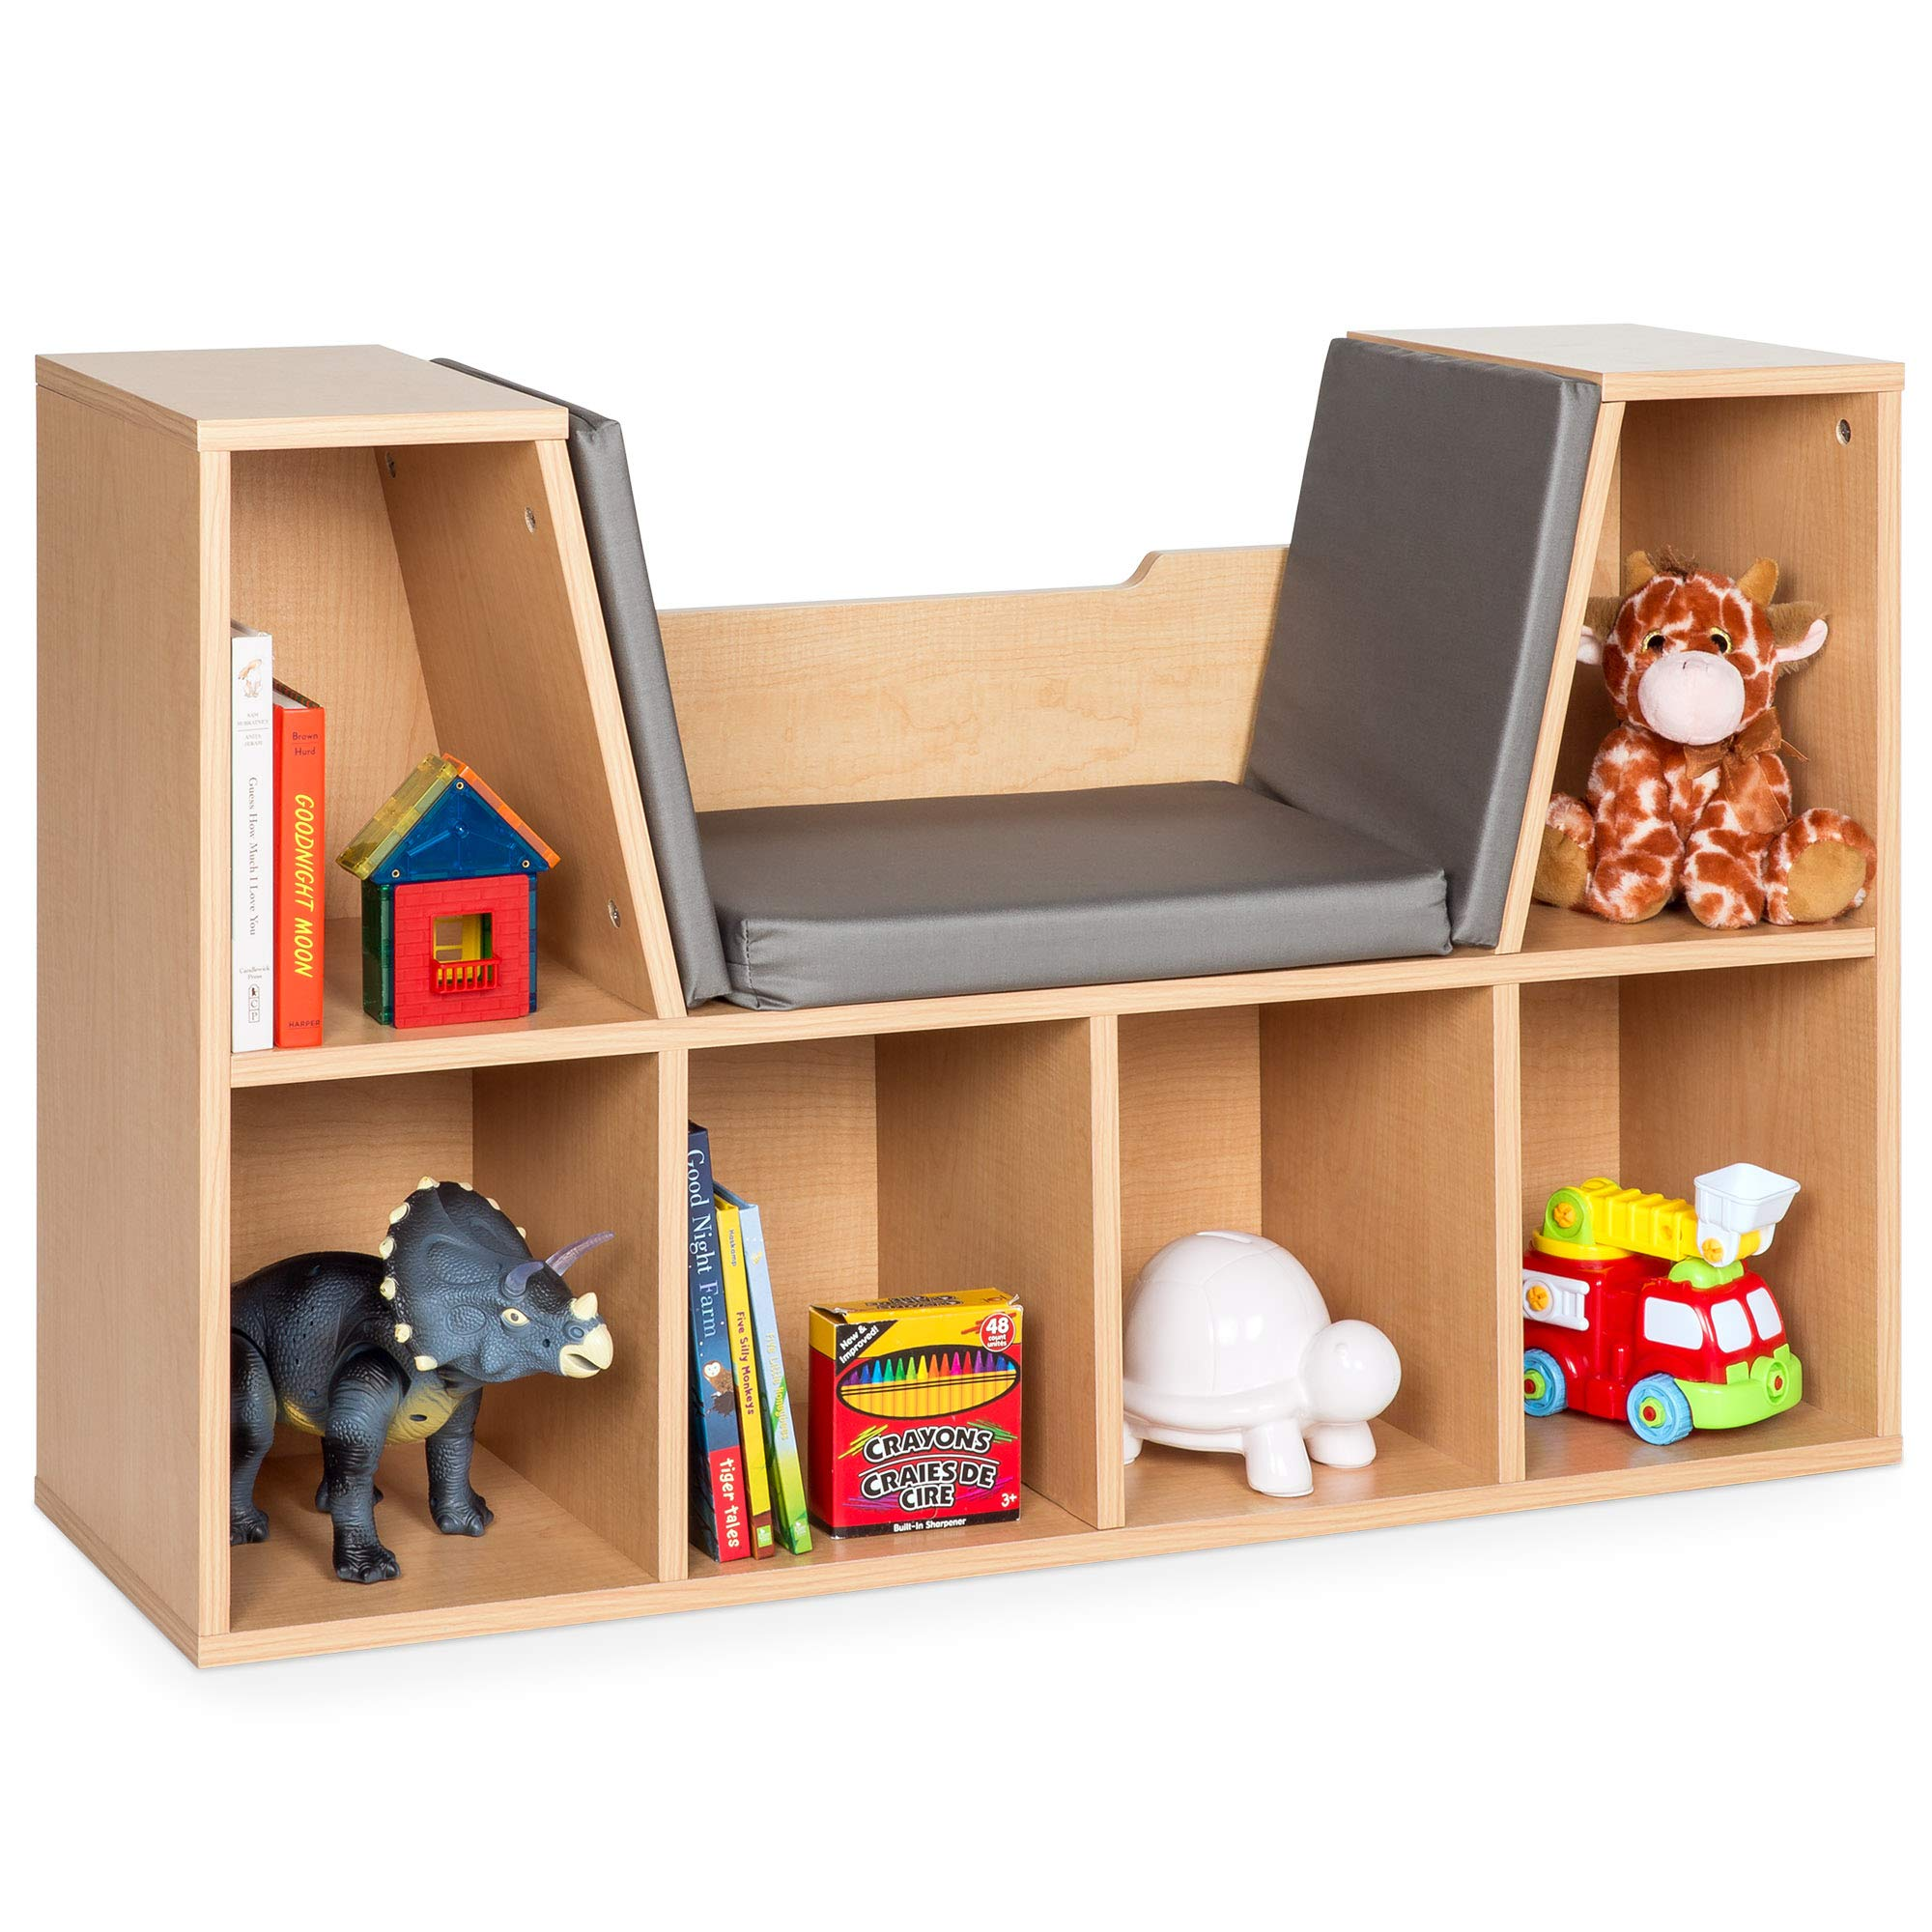 Best Choice Products Multi-Purpose 6-Cubby Kids Bedroom Storage Organizer Bookcases Shelf Furniture Decoration with Cushioned Reading Nook, Brown by Best Choice Products